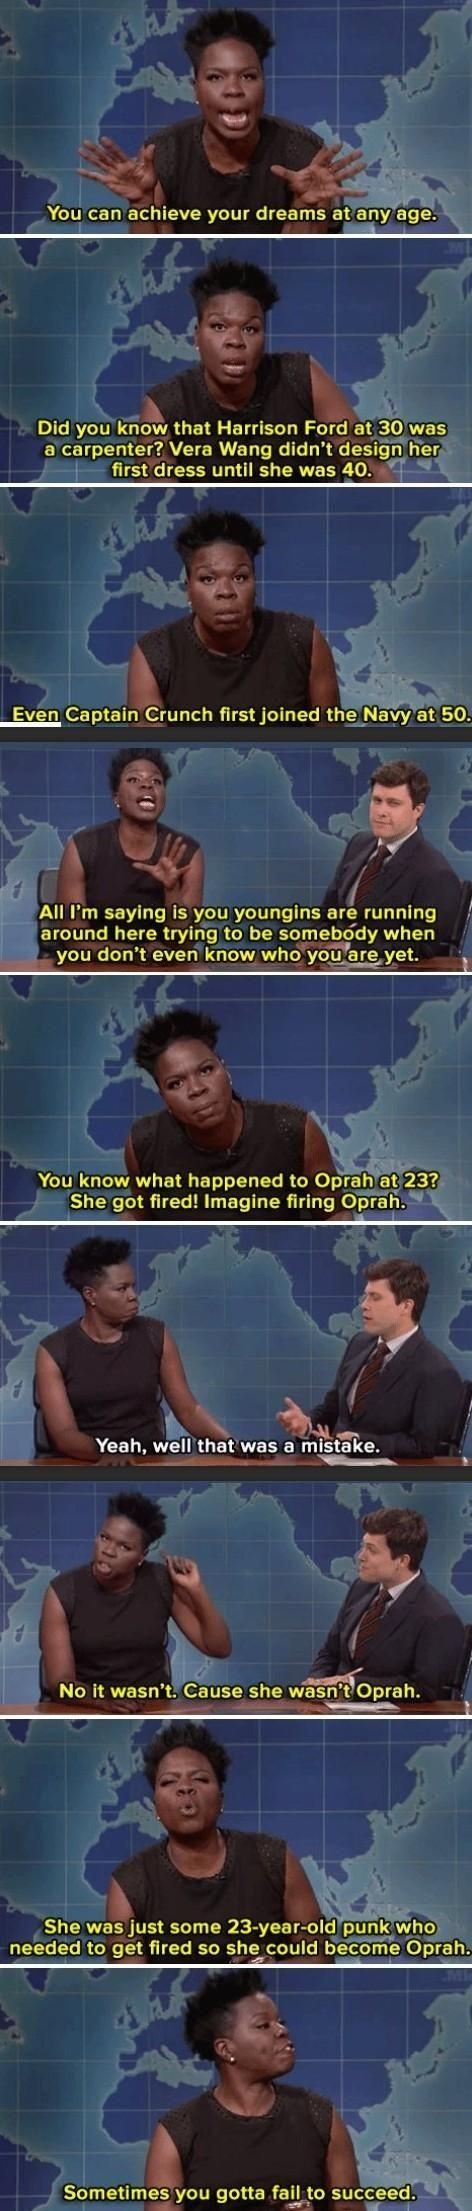 I love Leslie Jones. I needed this, people like me are desperately trying to find what we are supposed to be when we haven't even found out who we are!